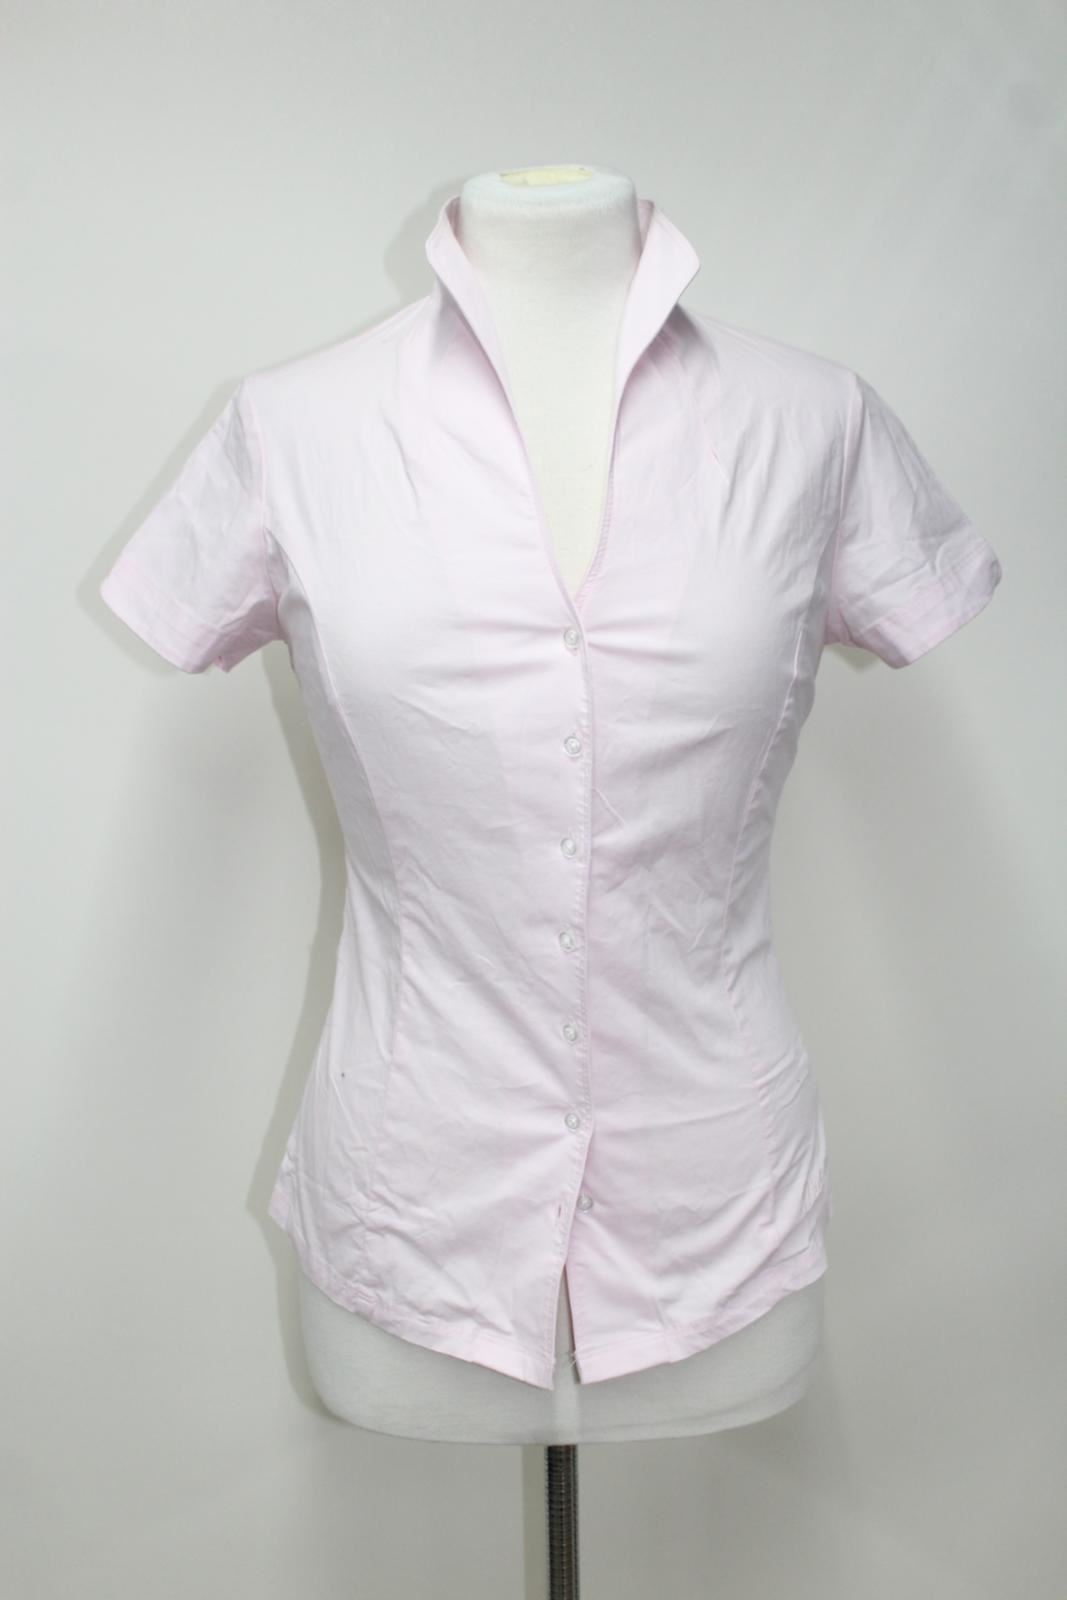 BNWT Dubarry Dubarry Dubarry Borragine donna rosa cotone stretch colletto della camicia Ritratto UK18 a011a3